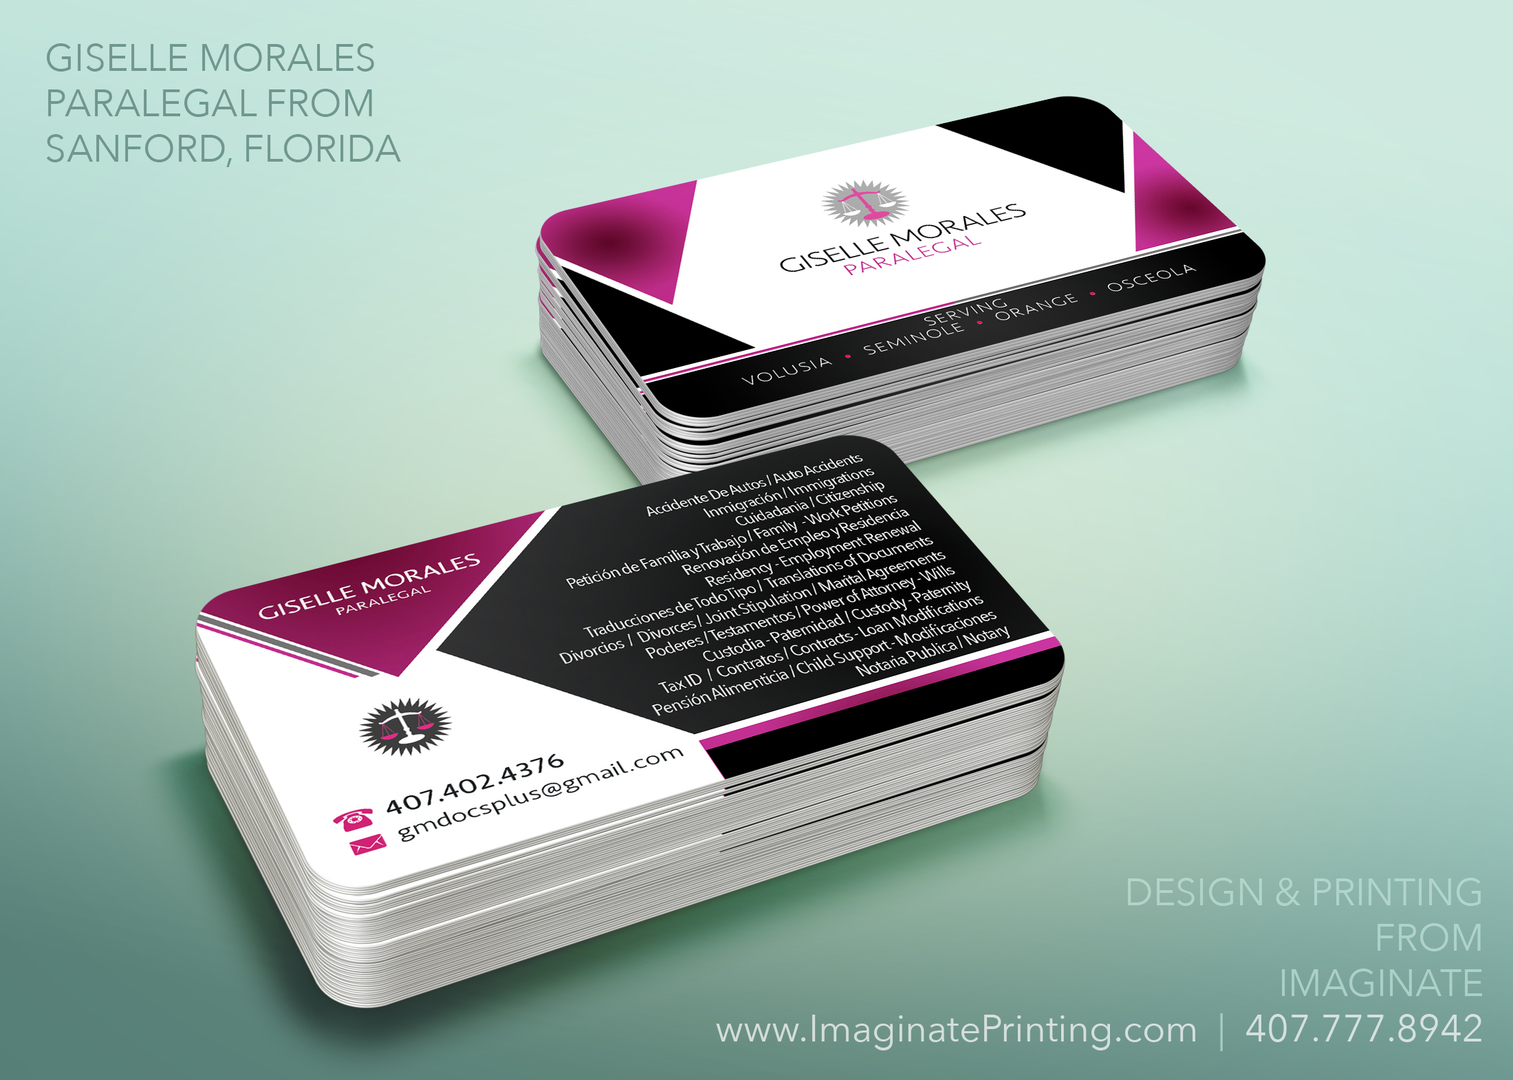 business cards for notary business cards source nebulawsimgcom - Notary Business Cards